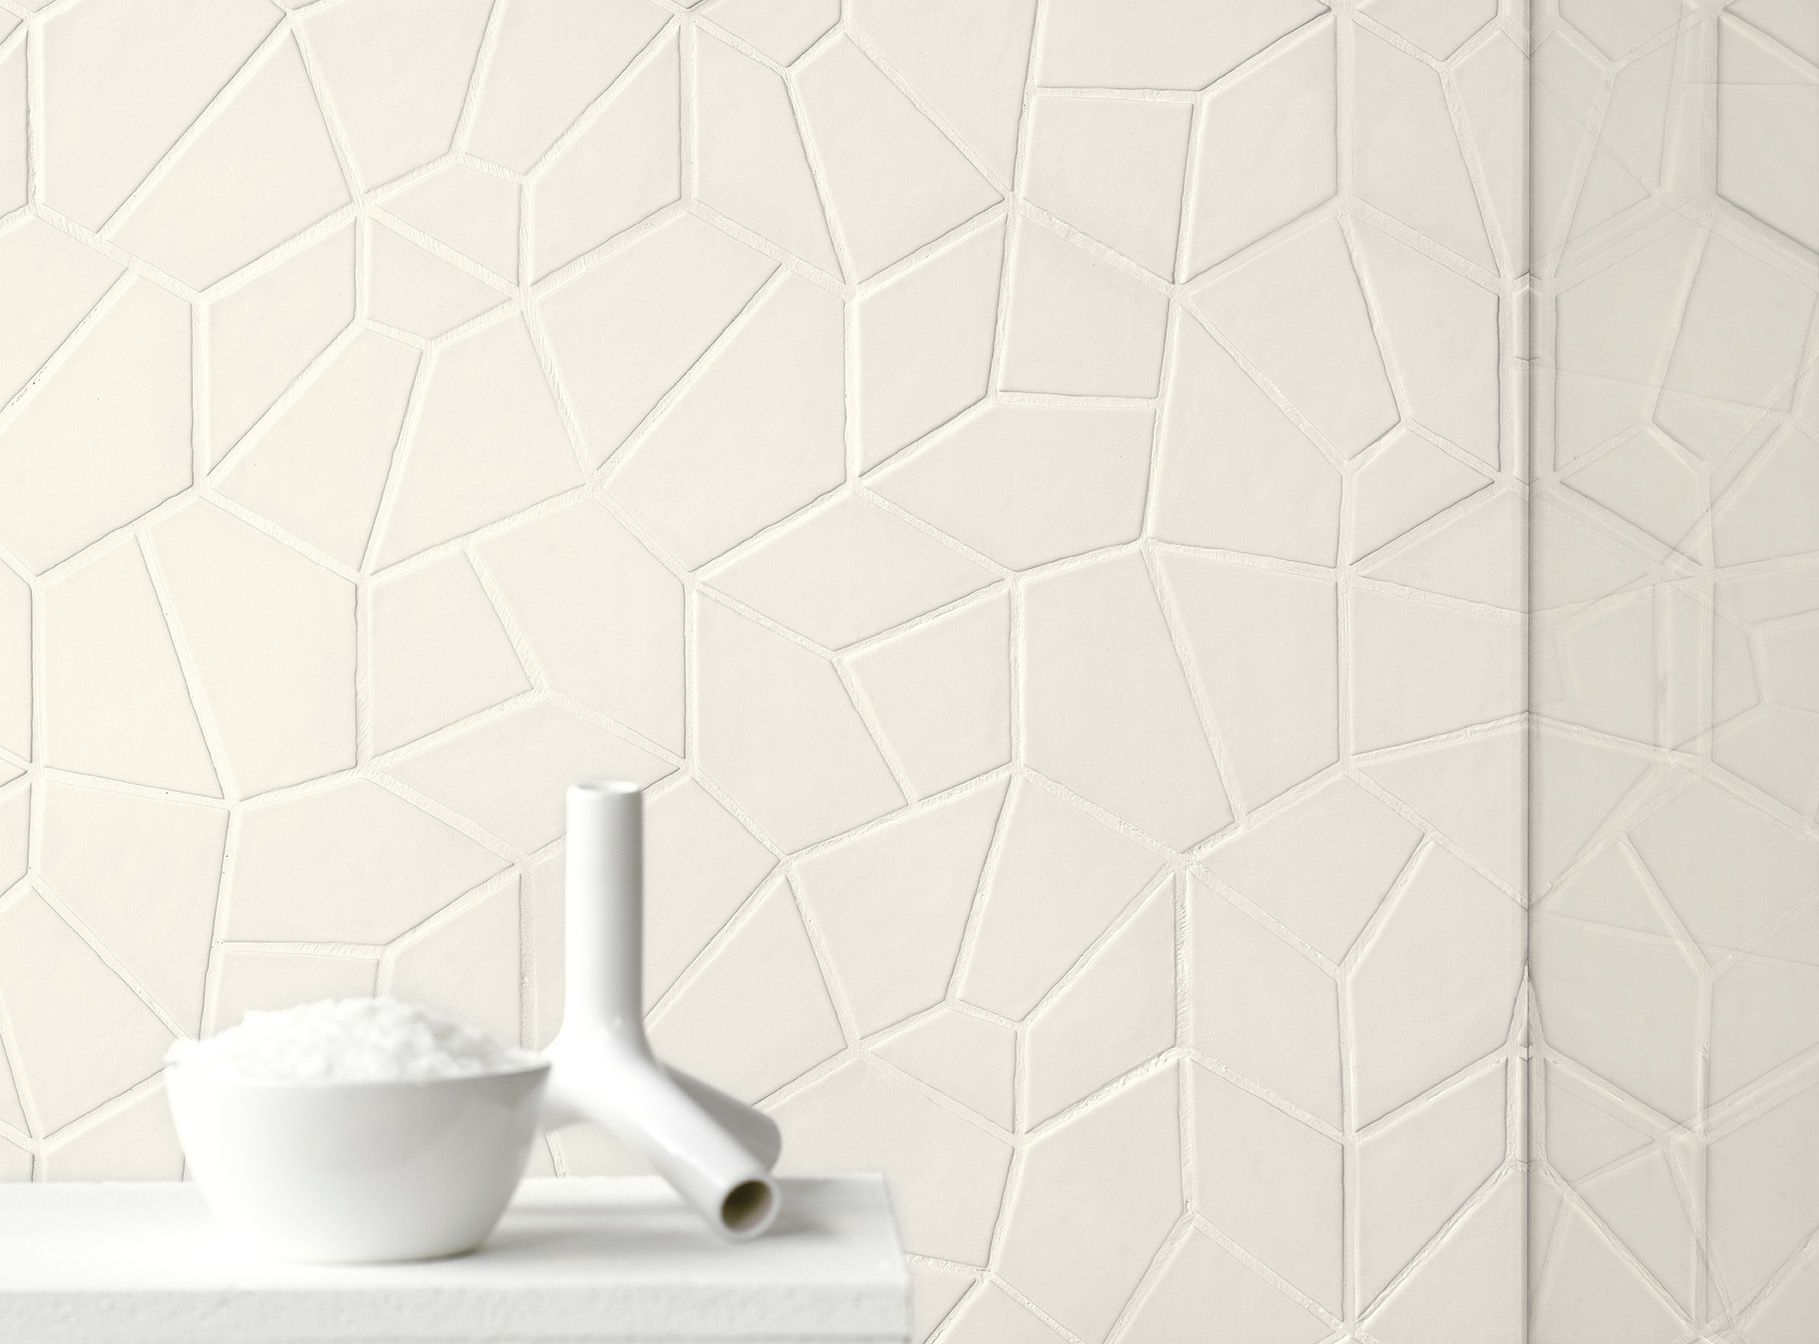 Brix tile dry vincent van duysen design inspired by the brix tile dry vincent van duysen design inspired by the irregular pattern of cracks formed by aged paint plaster or dried earth outdoor and indoor use dailygadgetfo Images